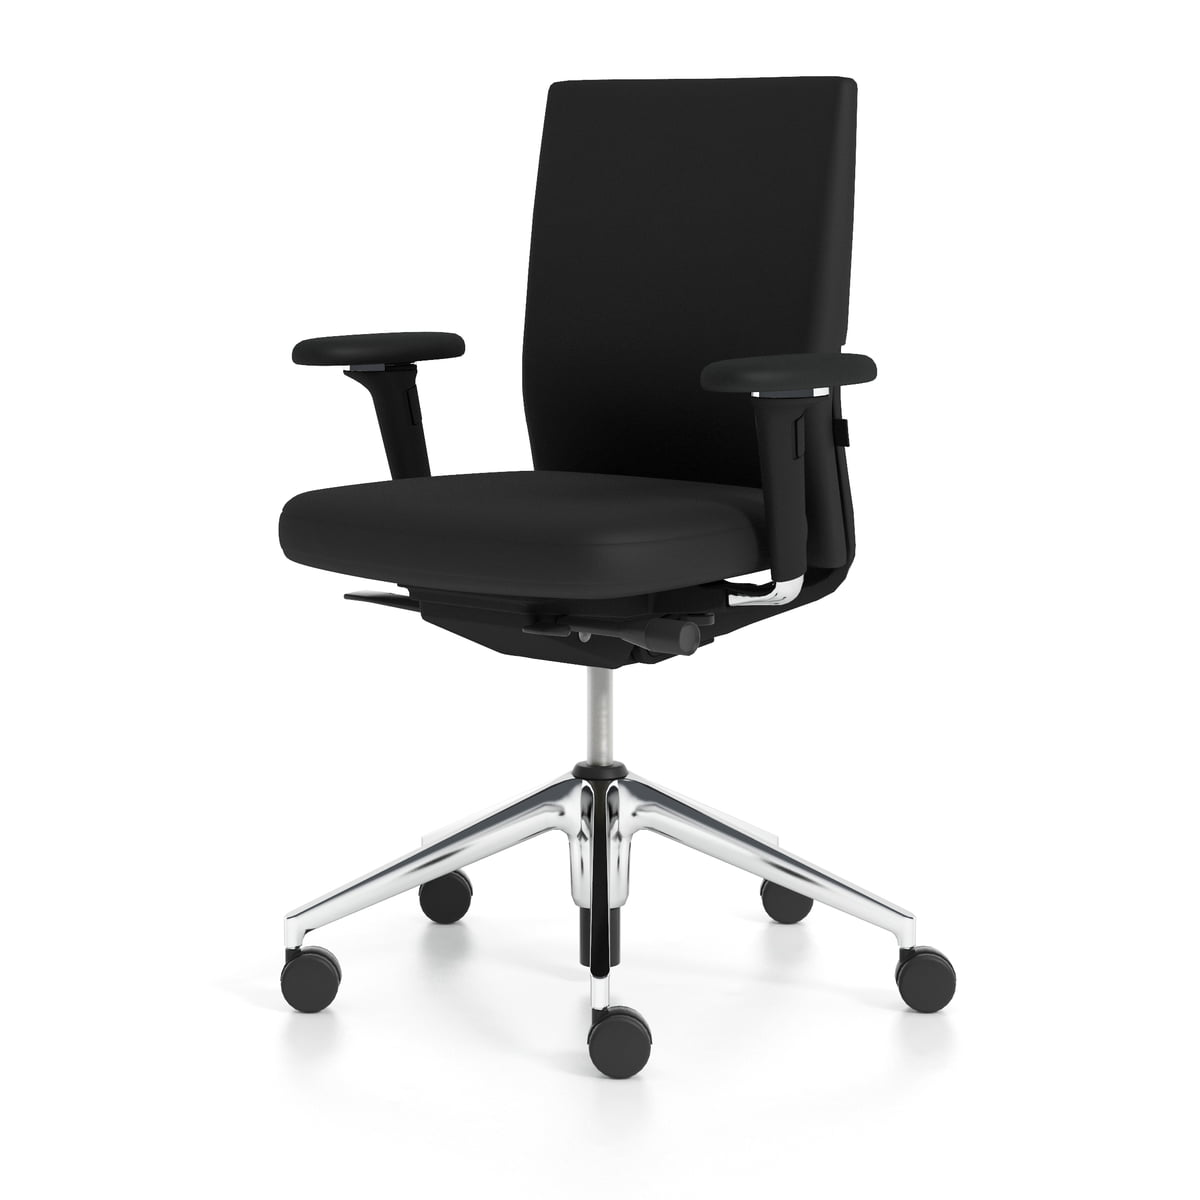 id soft office chair by vitra